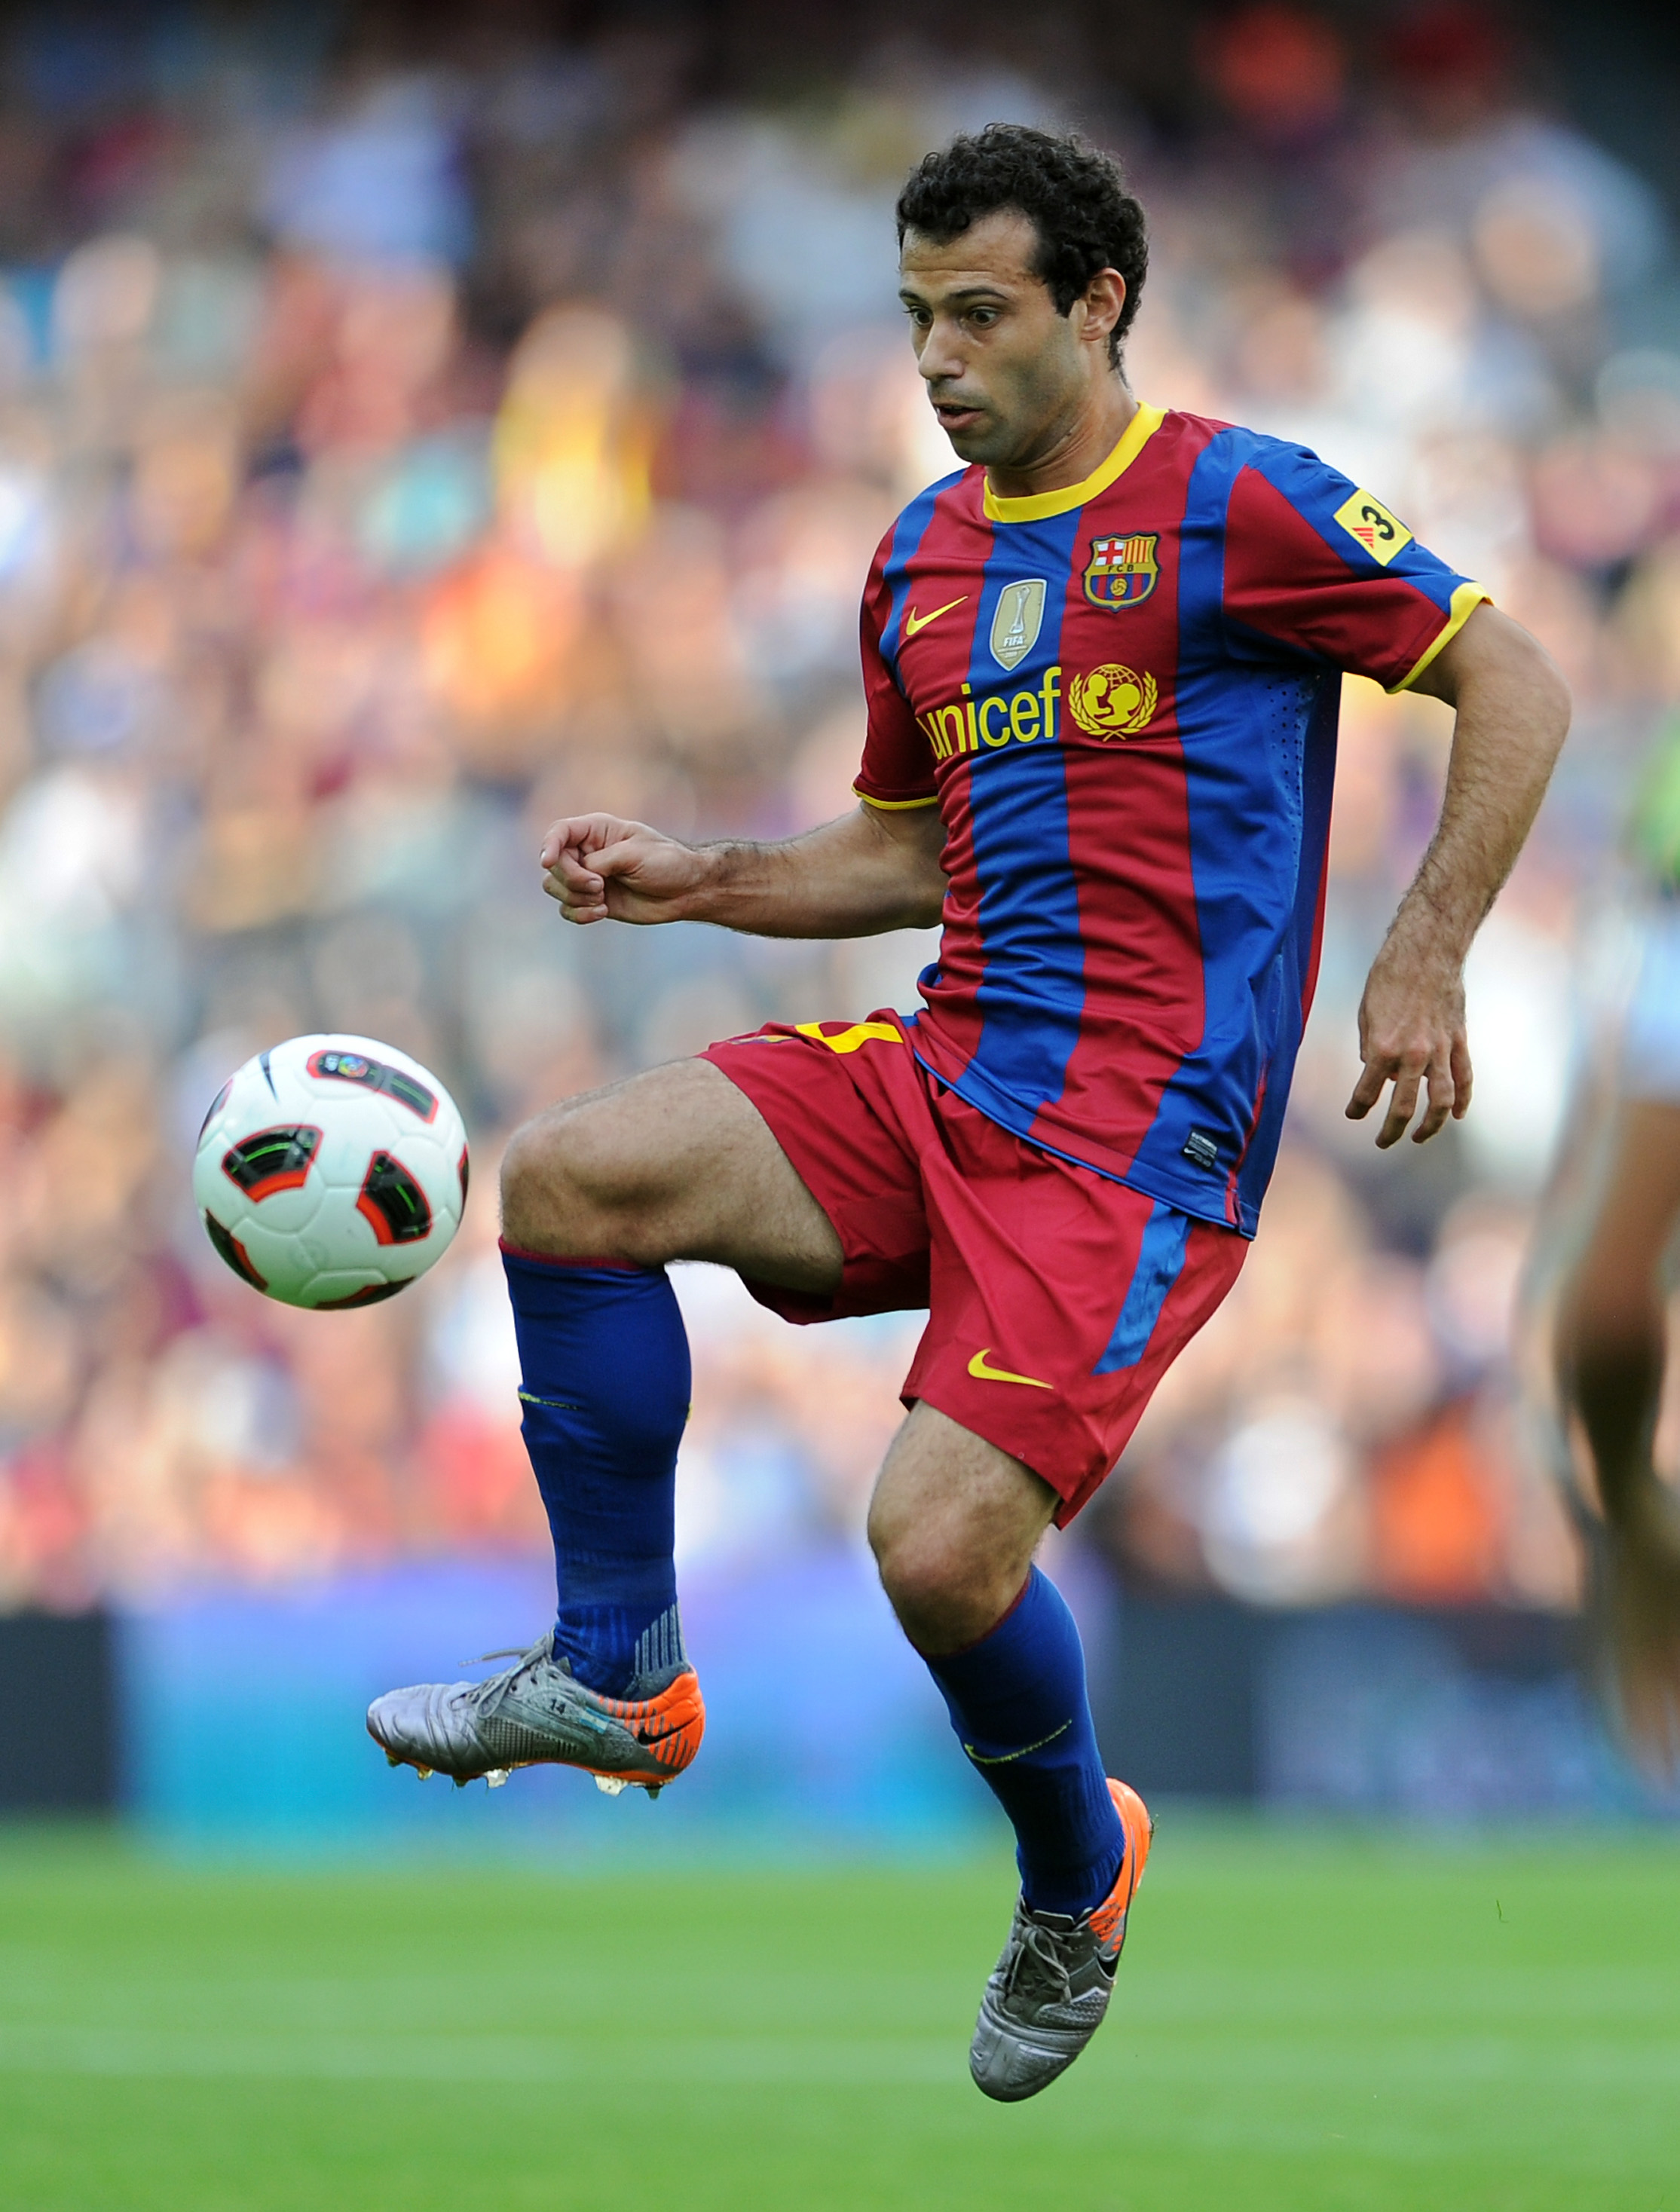 BARCELONA, SPAIN - SEPTEMBER 11:  Javier Mascherano of Barcelona controls the ball during the La Liga match between Barcelona and Hercules at the Camp Nou stadium on September 11, 2010 in Barcelona, Spain. Barcelona lost the match 2-0.  (Photo by Jasper J